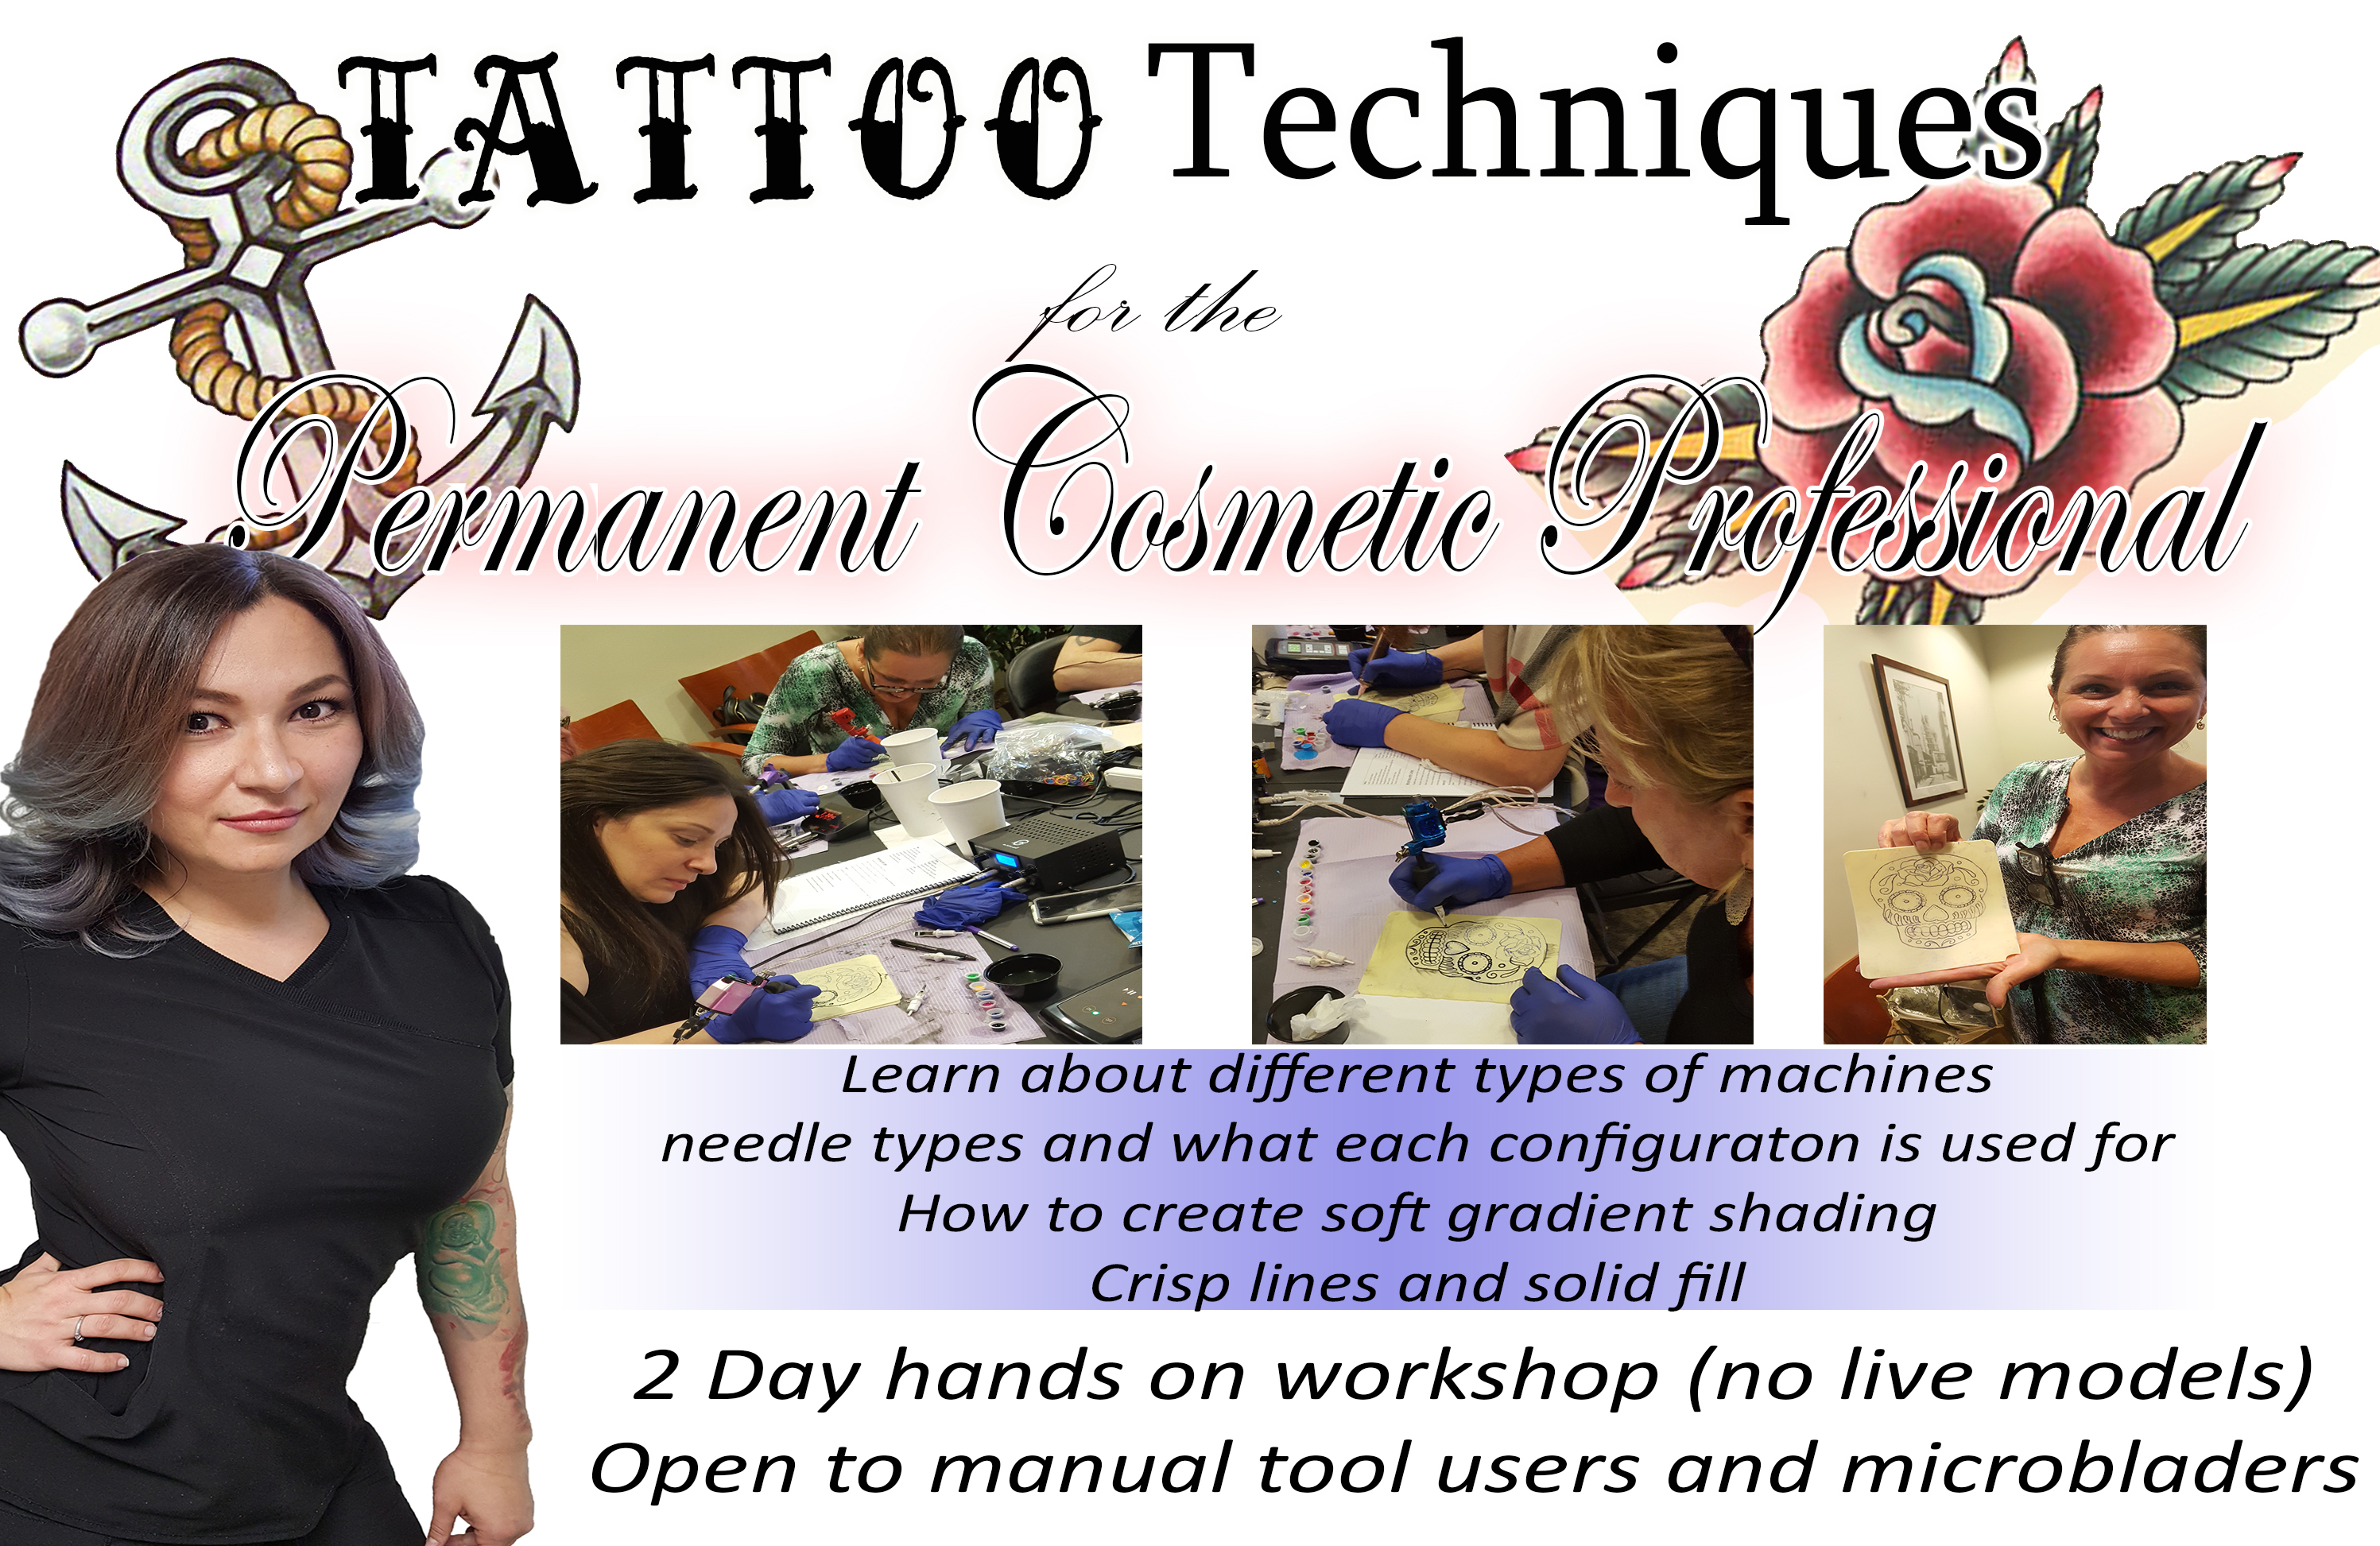 Tattoo Techniques for the Permanent Cosmetic Professionals